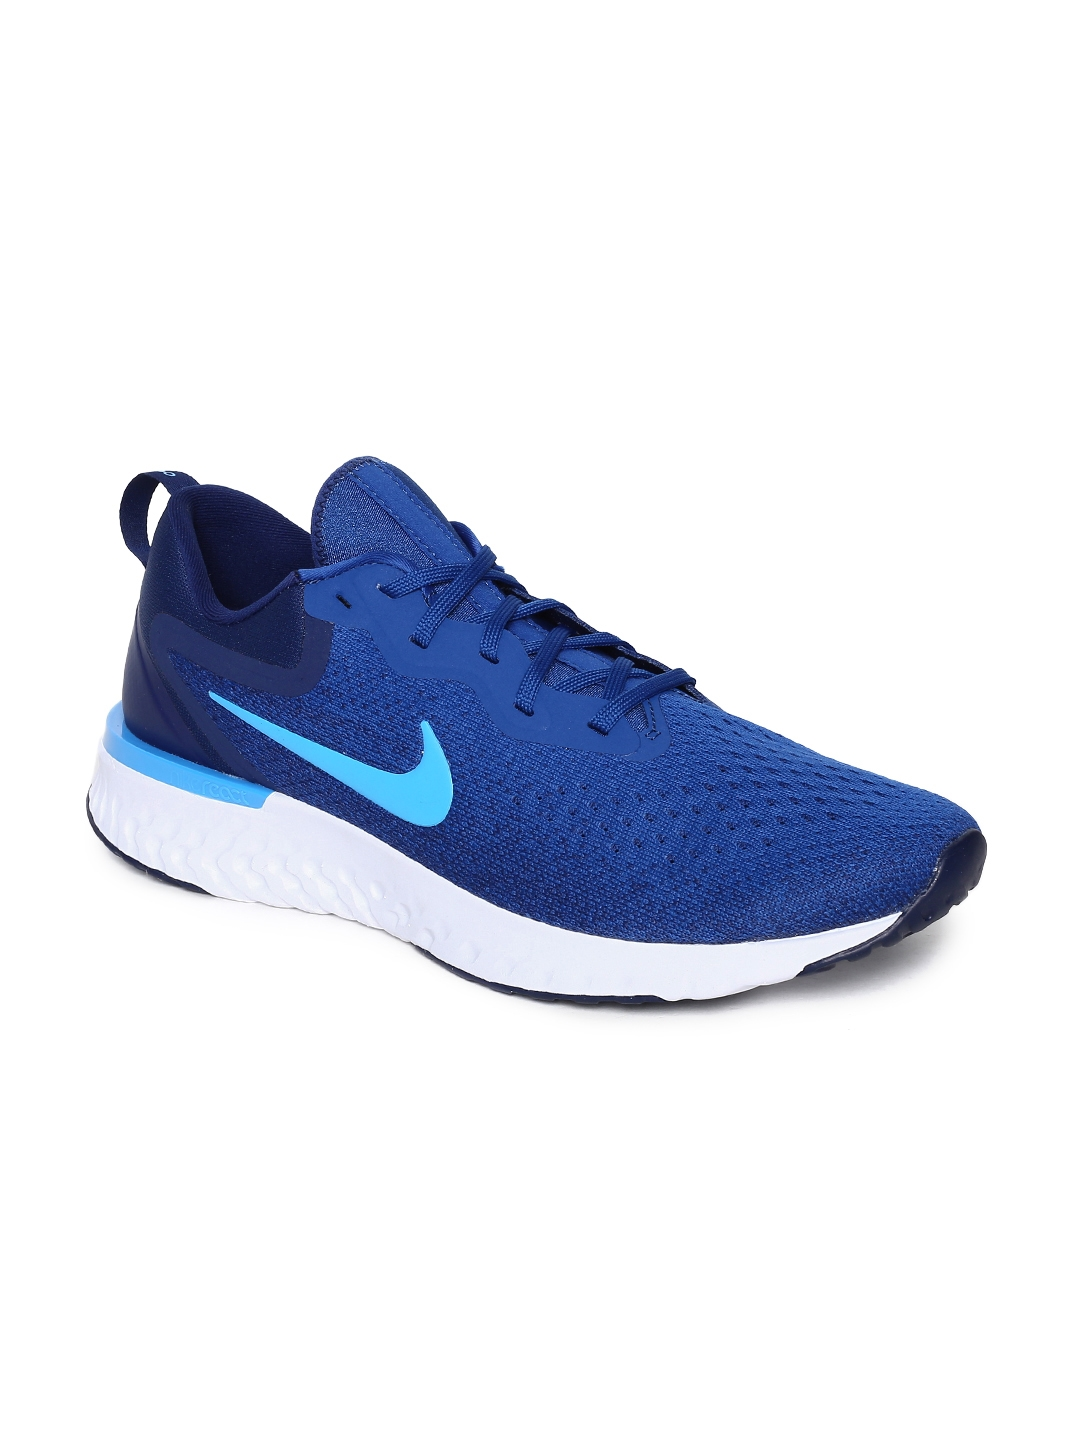 ffb0cae8fd24f Buy Nike Men Blue ODYSSEY REACT Running Shoes - Sports Shoes for Men ...